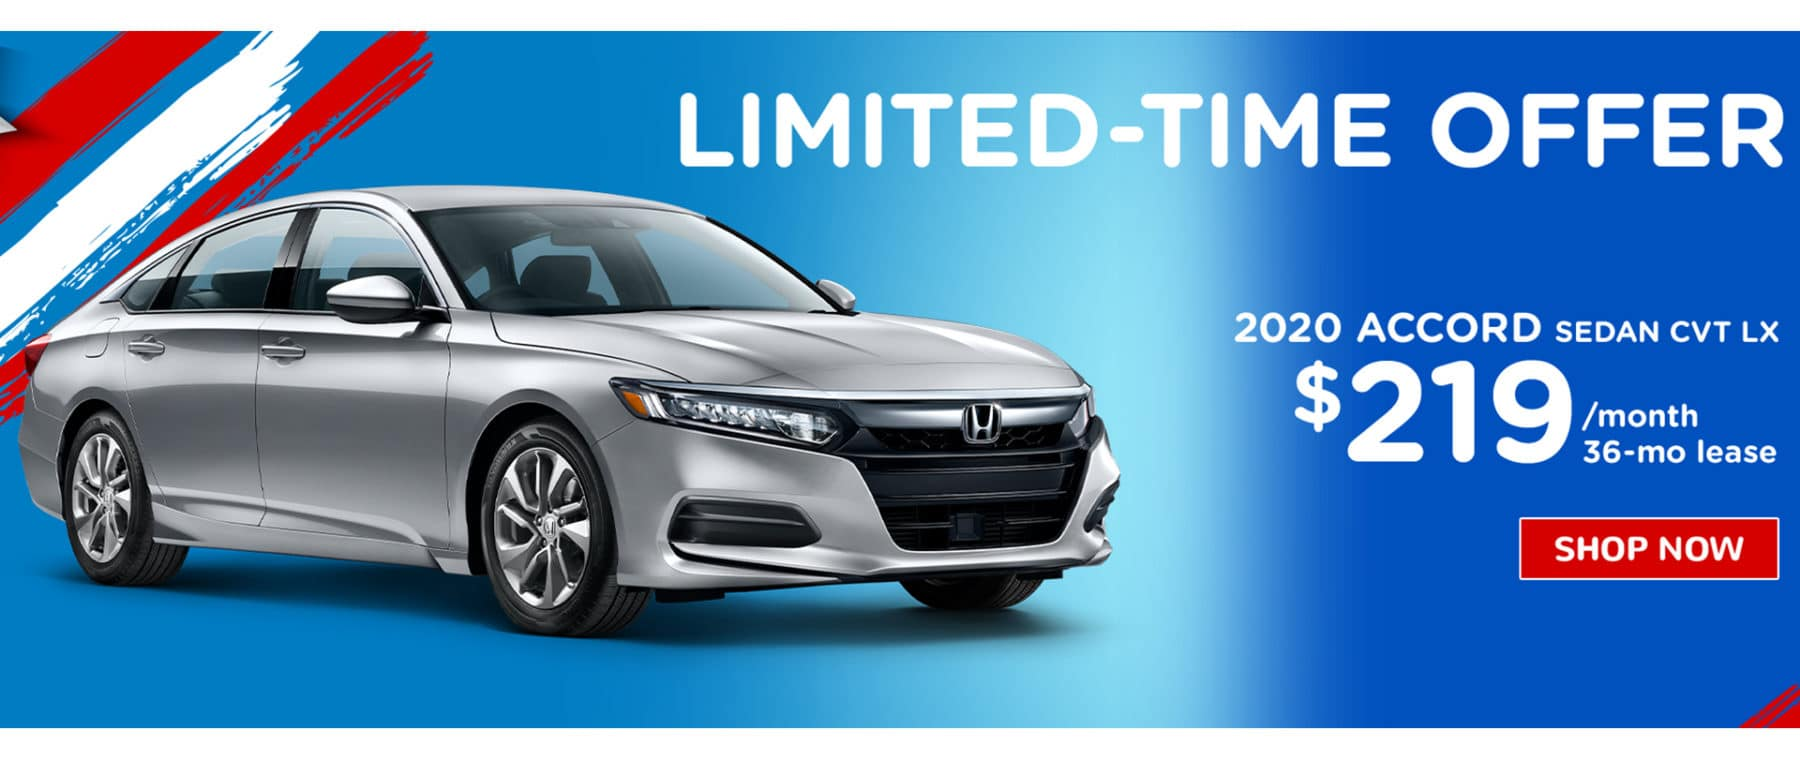 2020 Accord Sedan CVT LX shop now